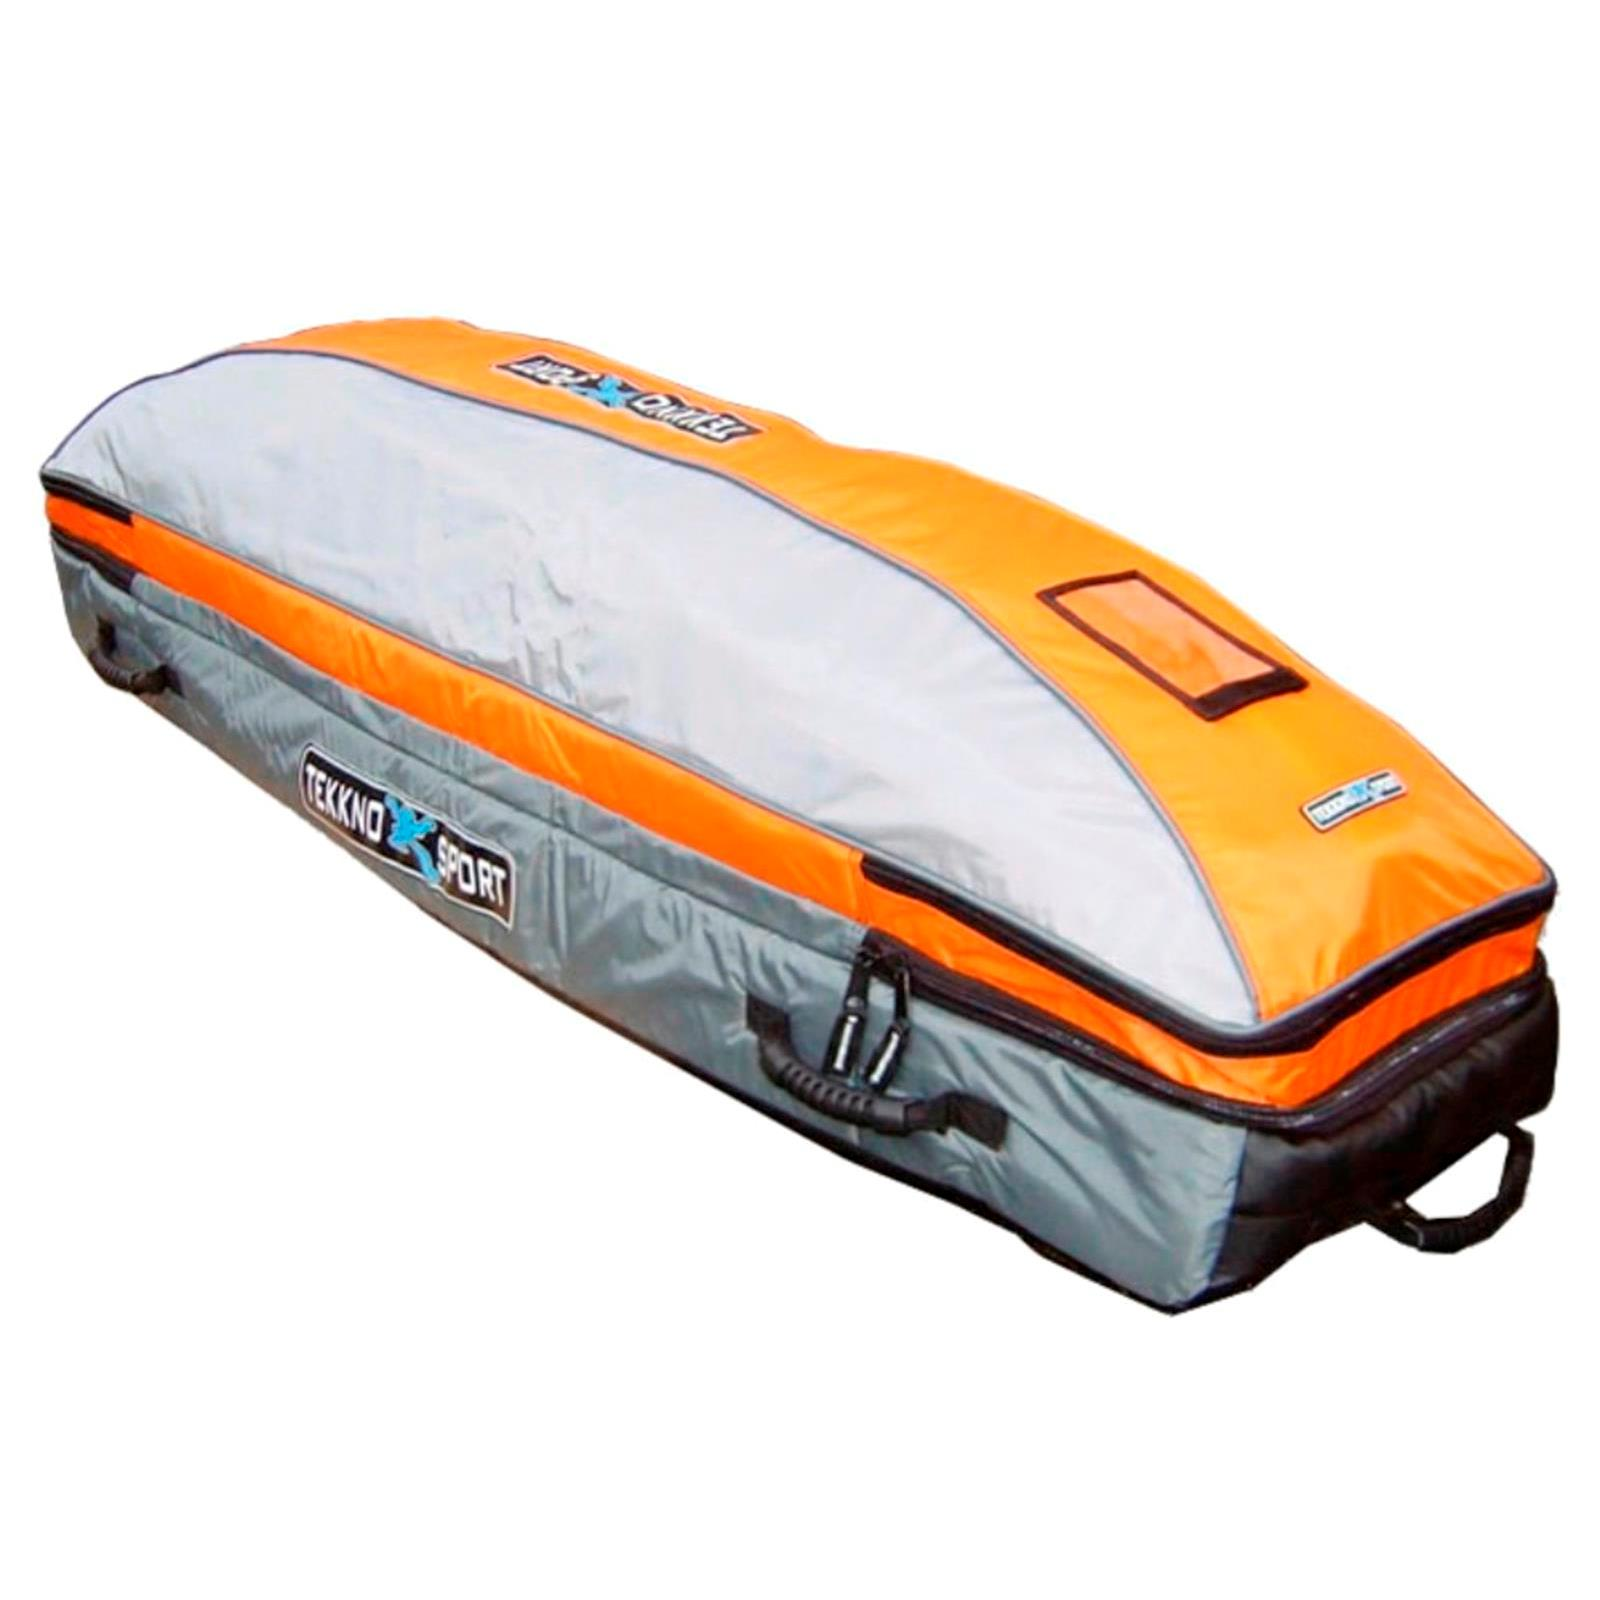 Tekknosport Kite Travel Boardbag 150x45x40 Orange